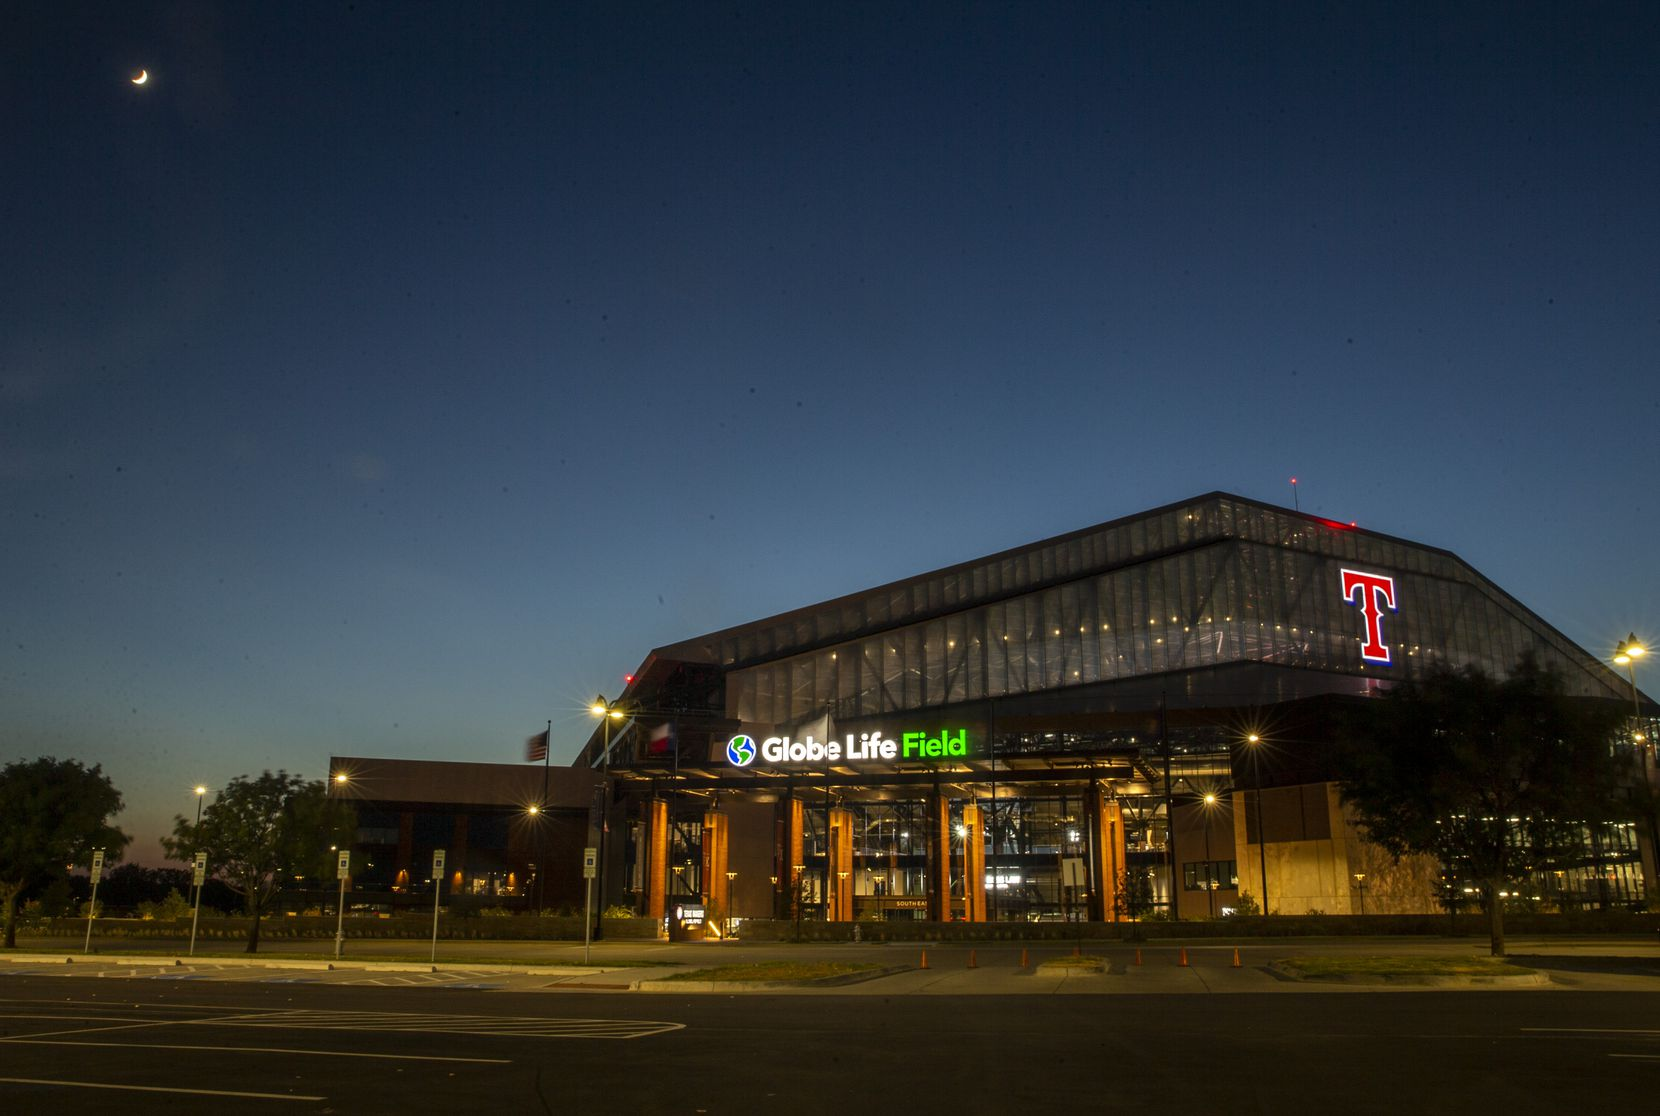 An adjacent parking lot sits empty by Globe Life Field during the opening day game of the Texas Rangers season at Texas Live! in Arlington, Texas, on Friday, July 24, 2020. The Rangers played the Colorado Rockies at the new Globe Life Field stadium, but fans had to watch on televised screens outside due to the ongoing pandemic. (Lynda M. Gonzalez/The Dallas Morning News)